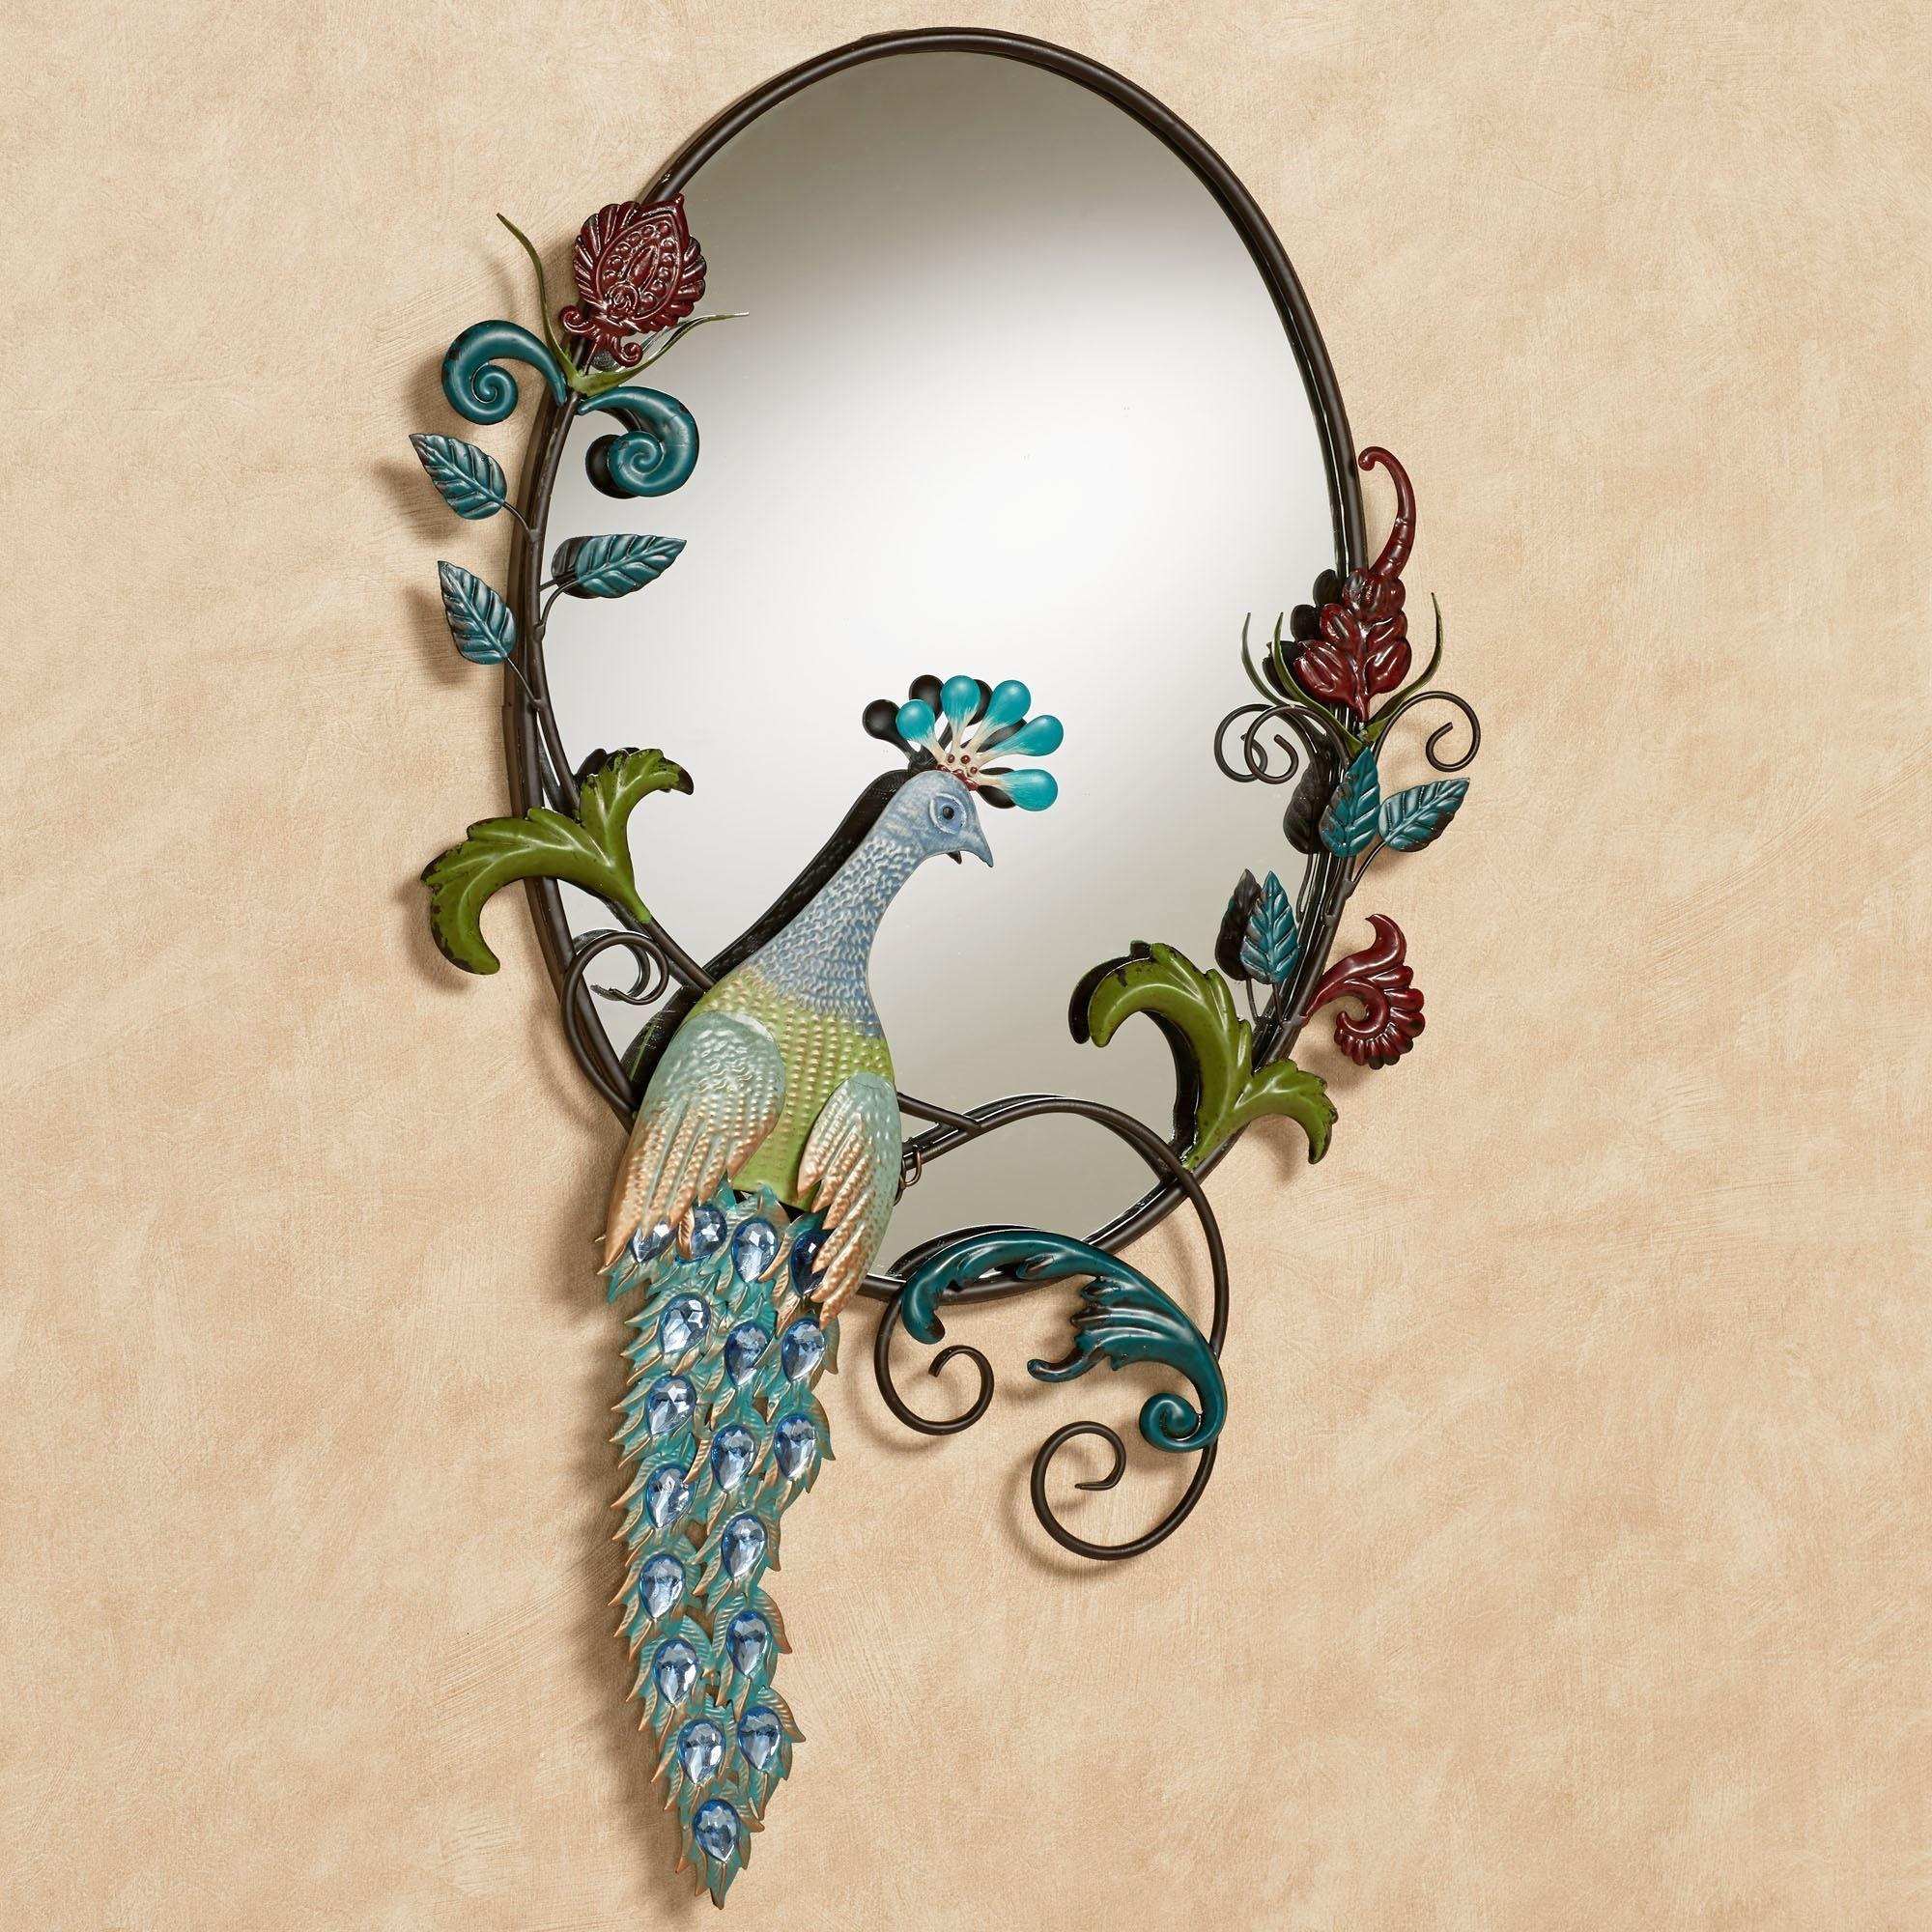 Glorious Jeweled Peacock Wall Mirror Inside Jeweled Peacock Wall Art (Image 9 of 20)